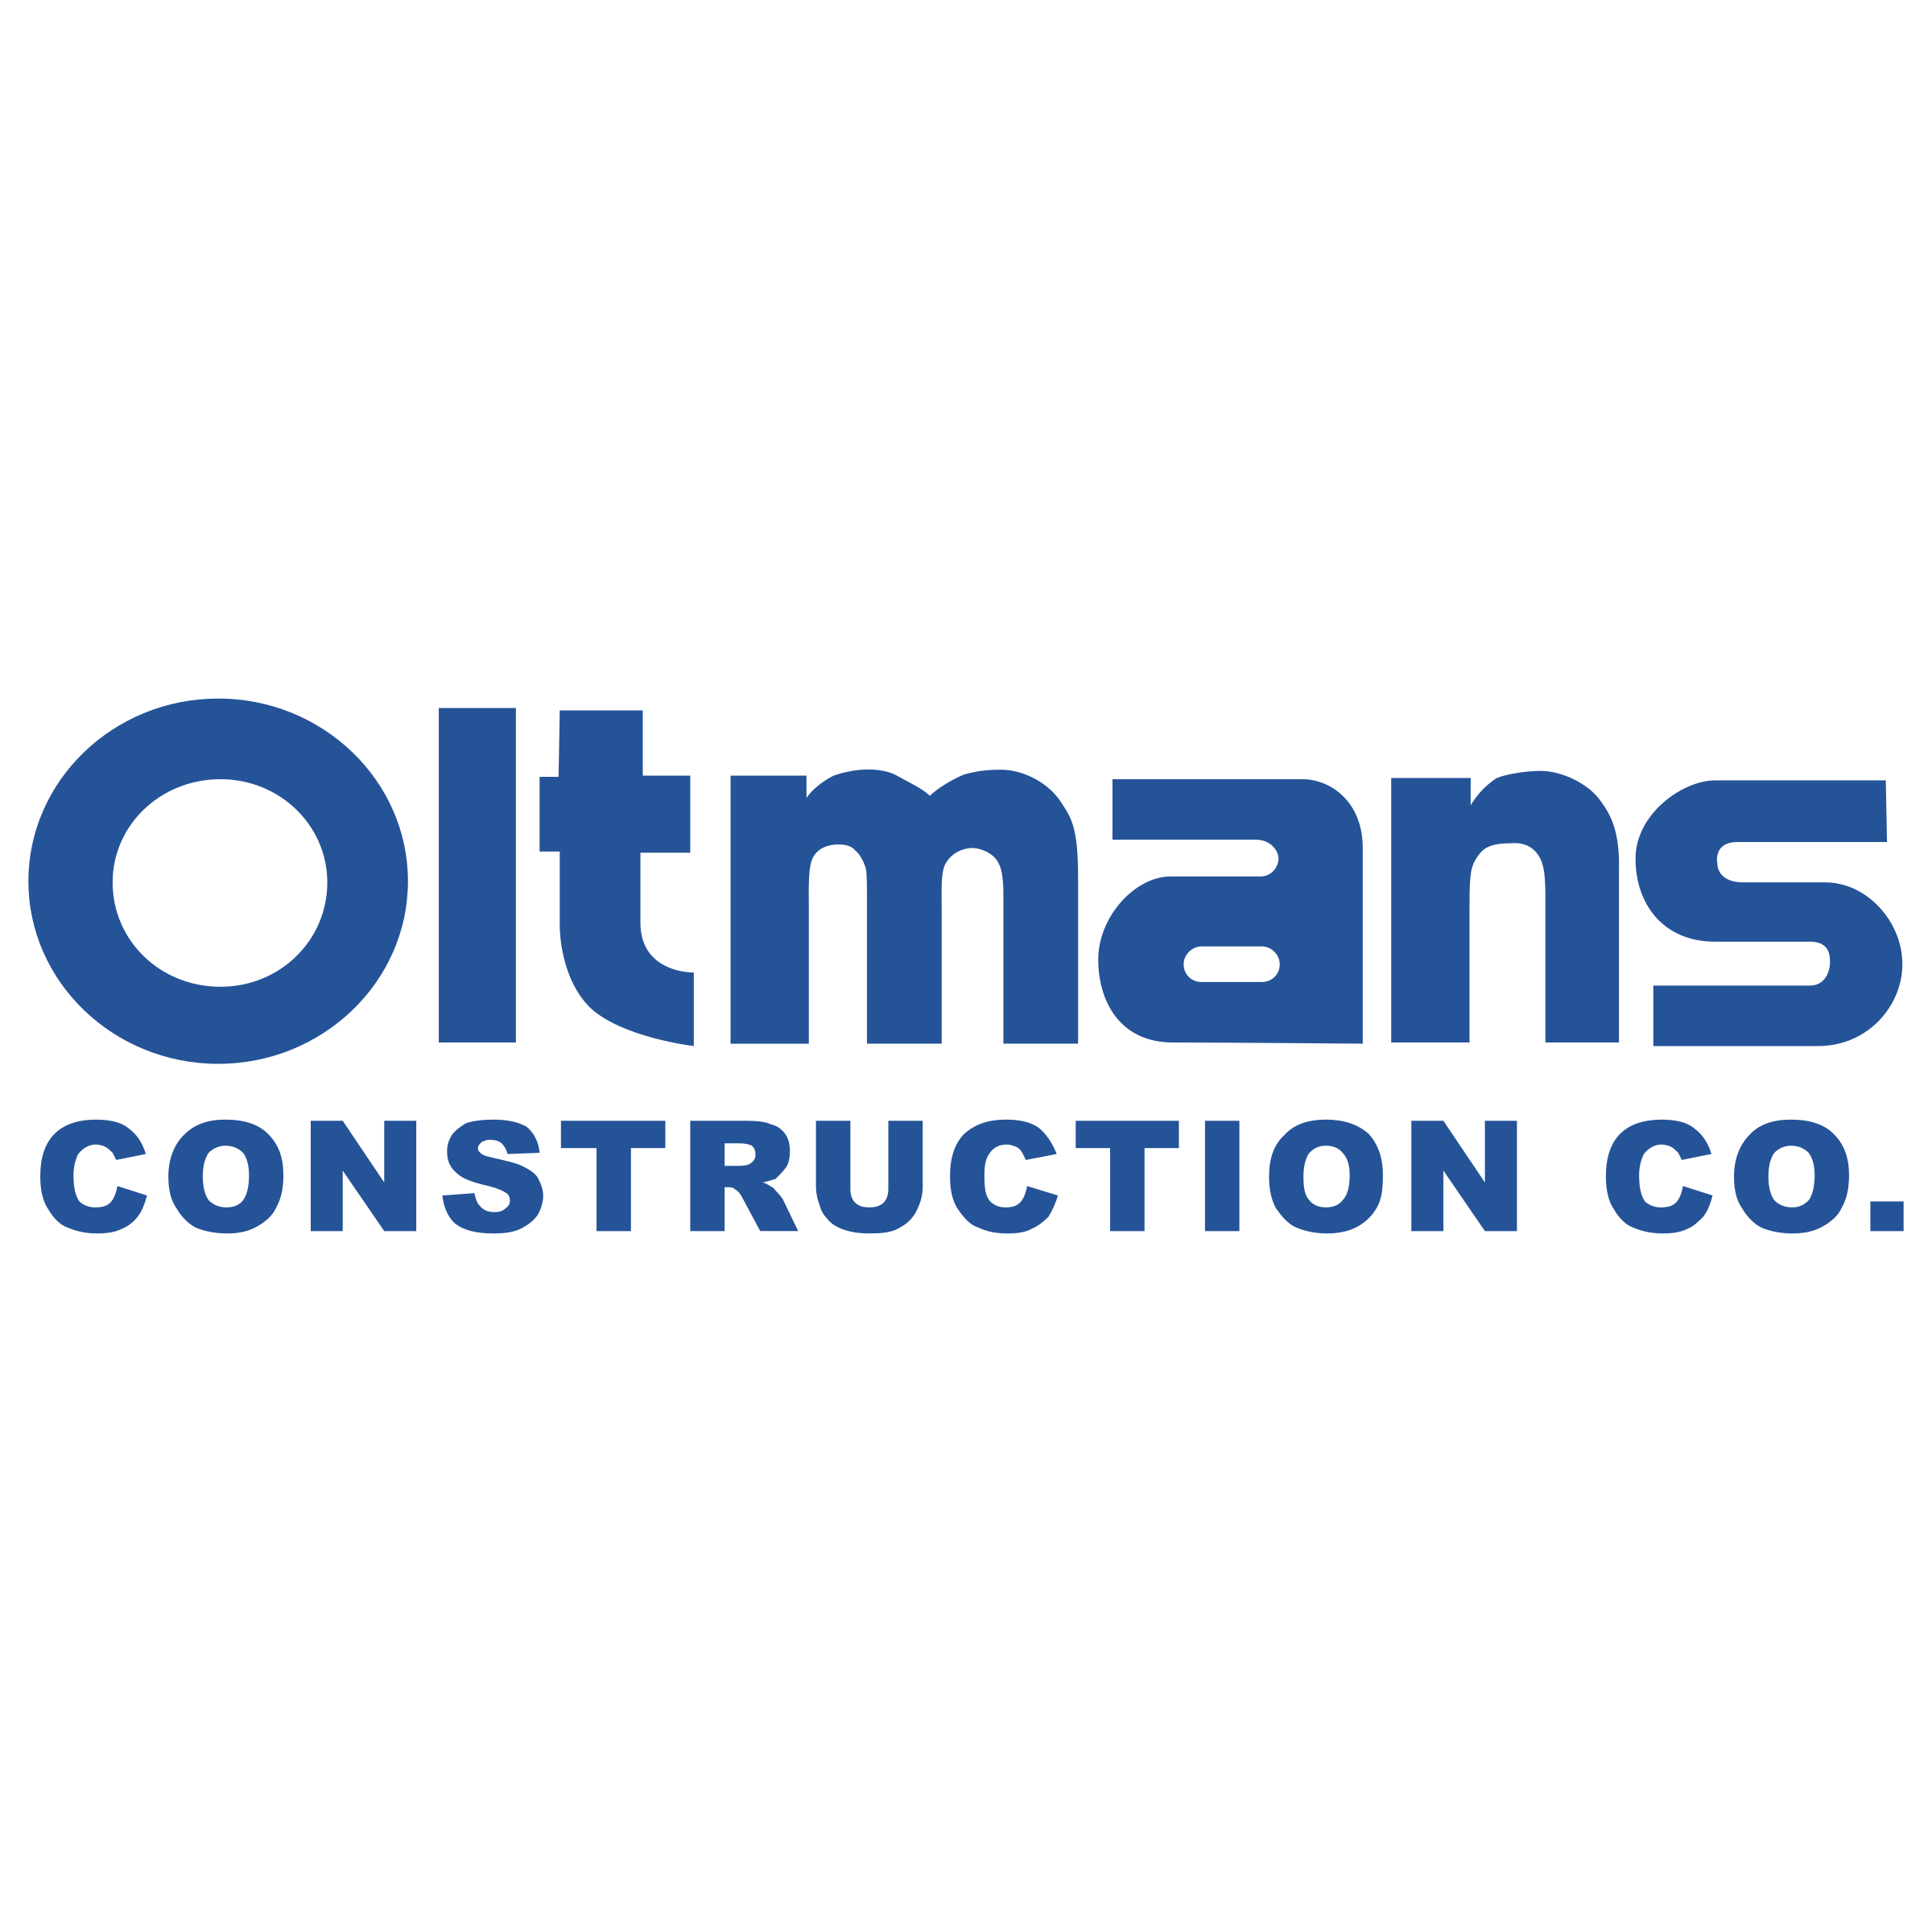 Oltmans Construction Logo PNG Transparent